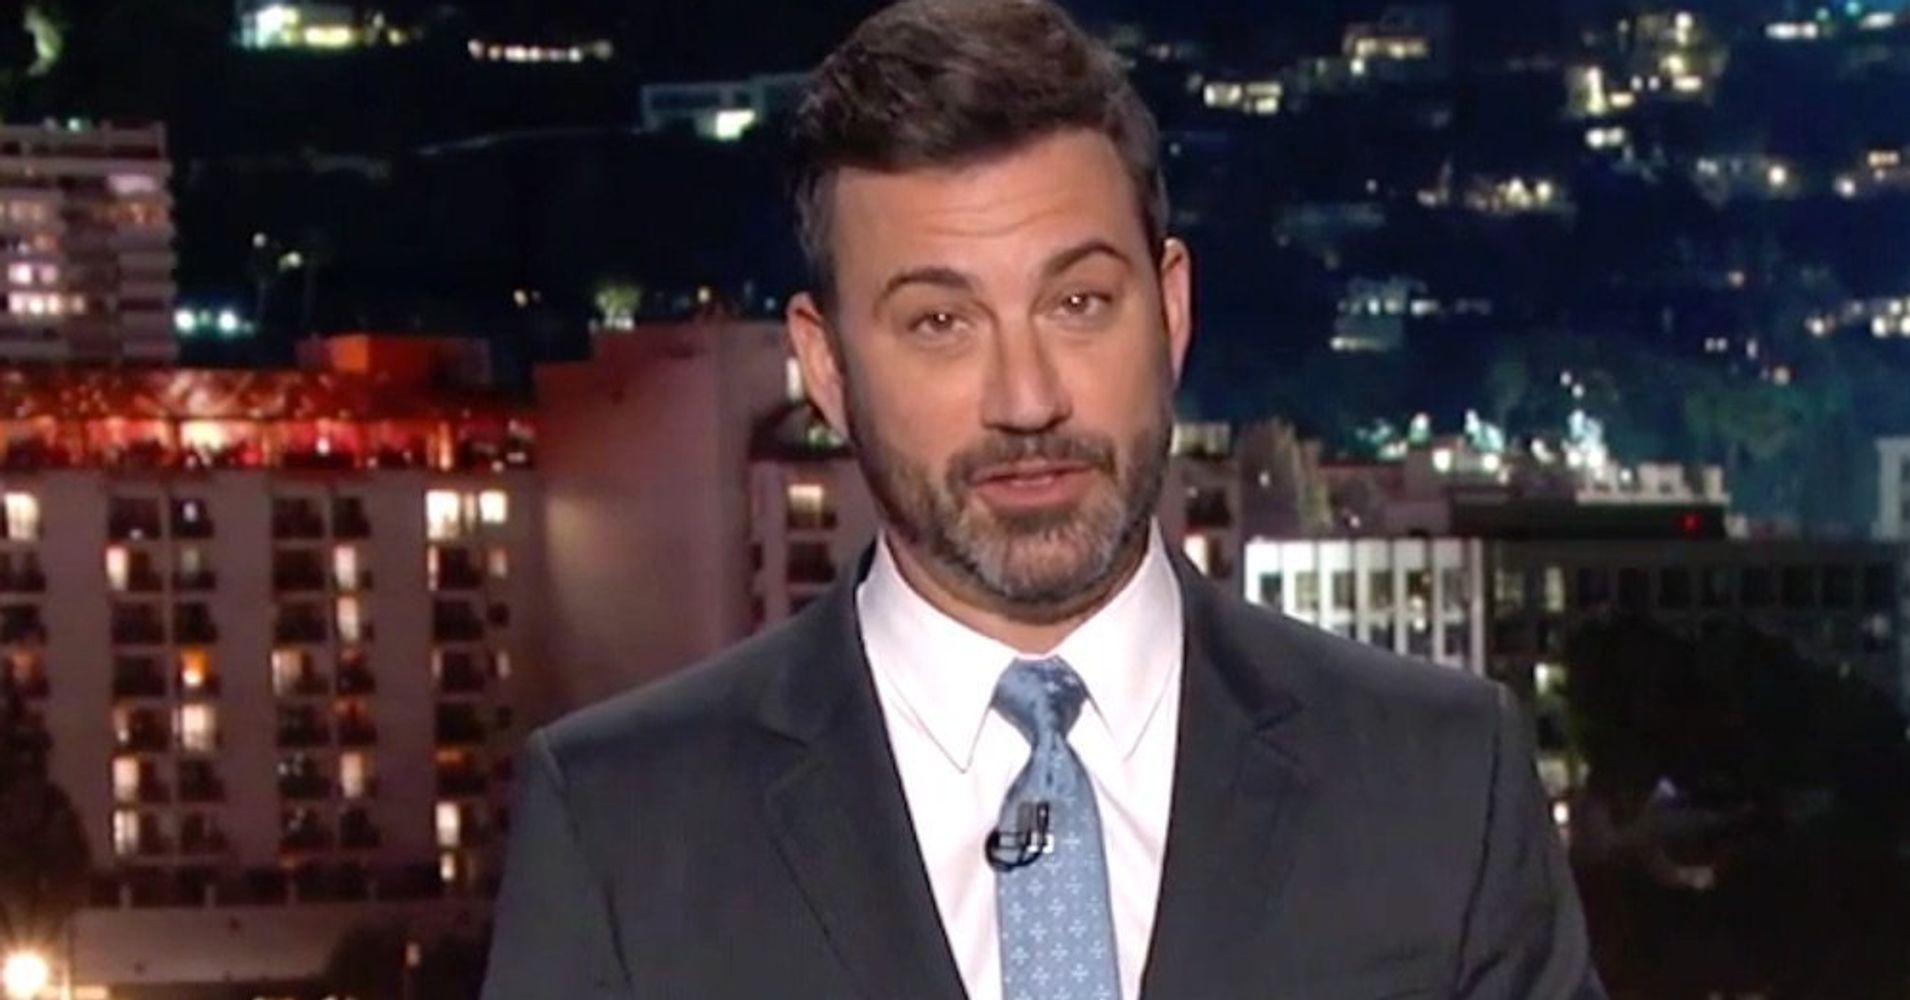 Jimmy Kimmel Shuts Down Trump's IQ Boasts